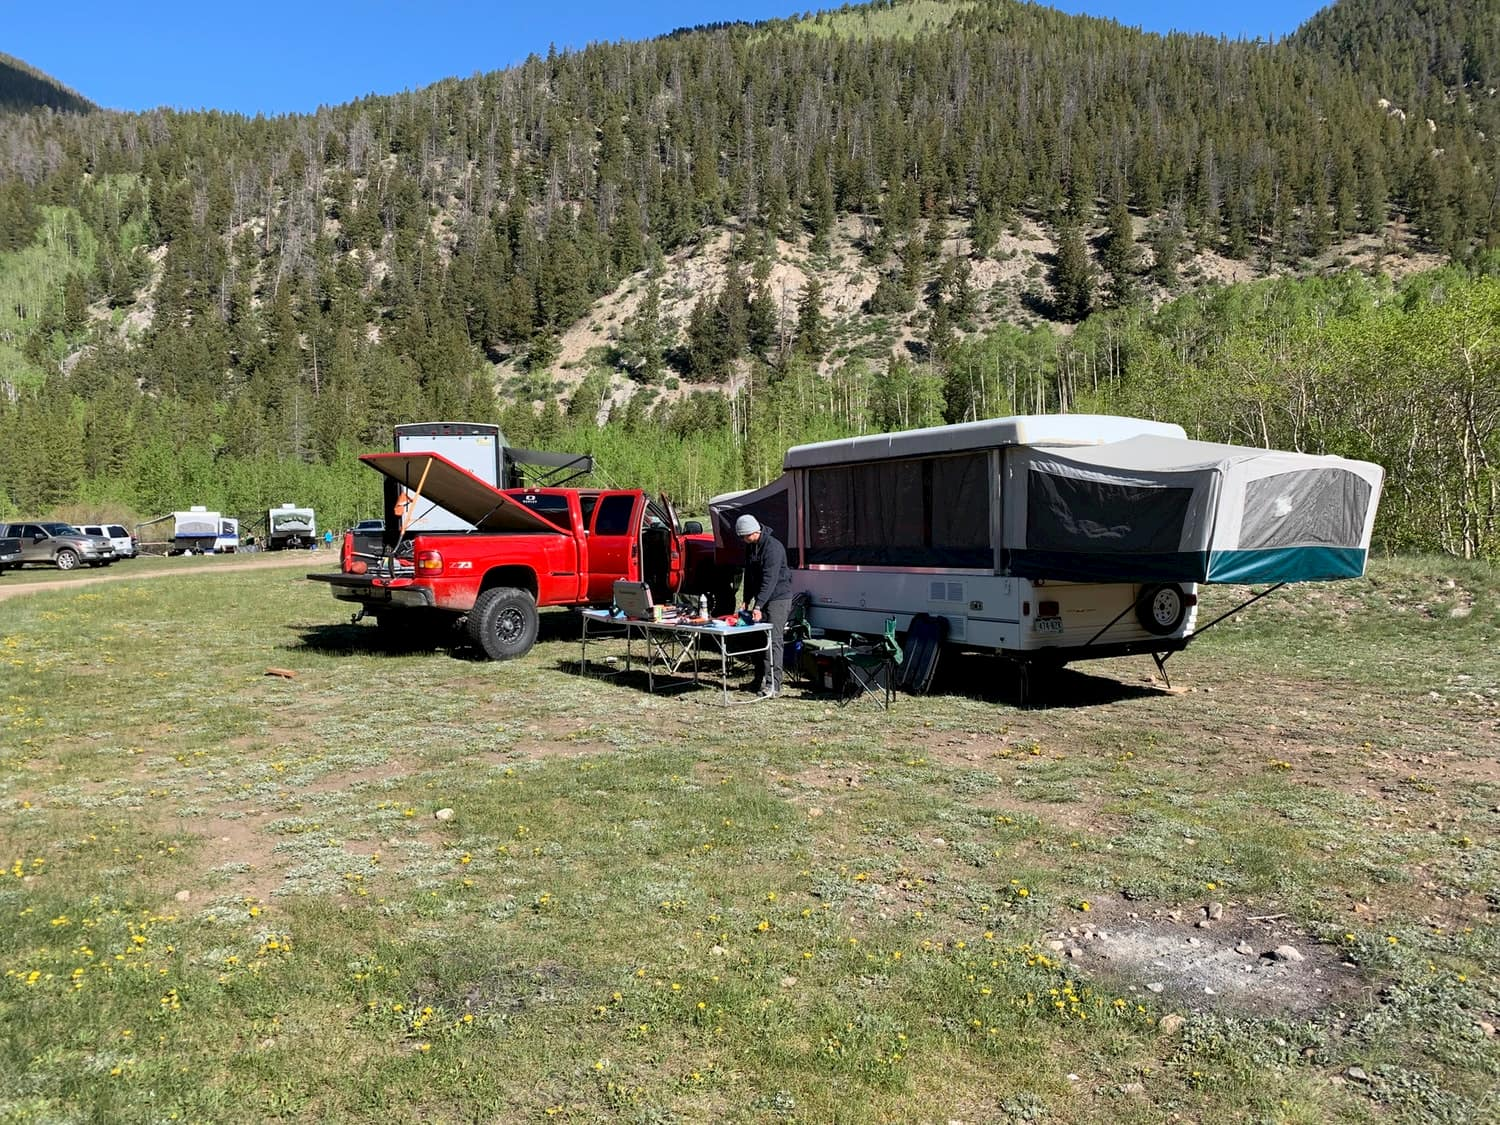 Person cooking at campsite beside pickup truck and pop-up camper.